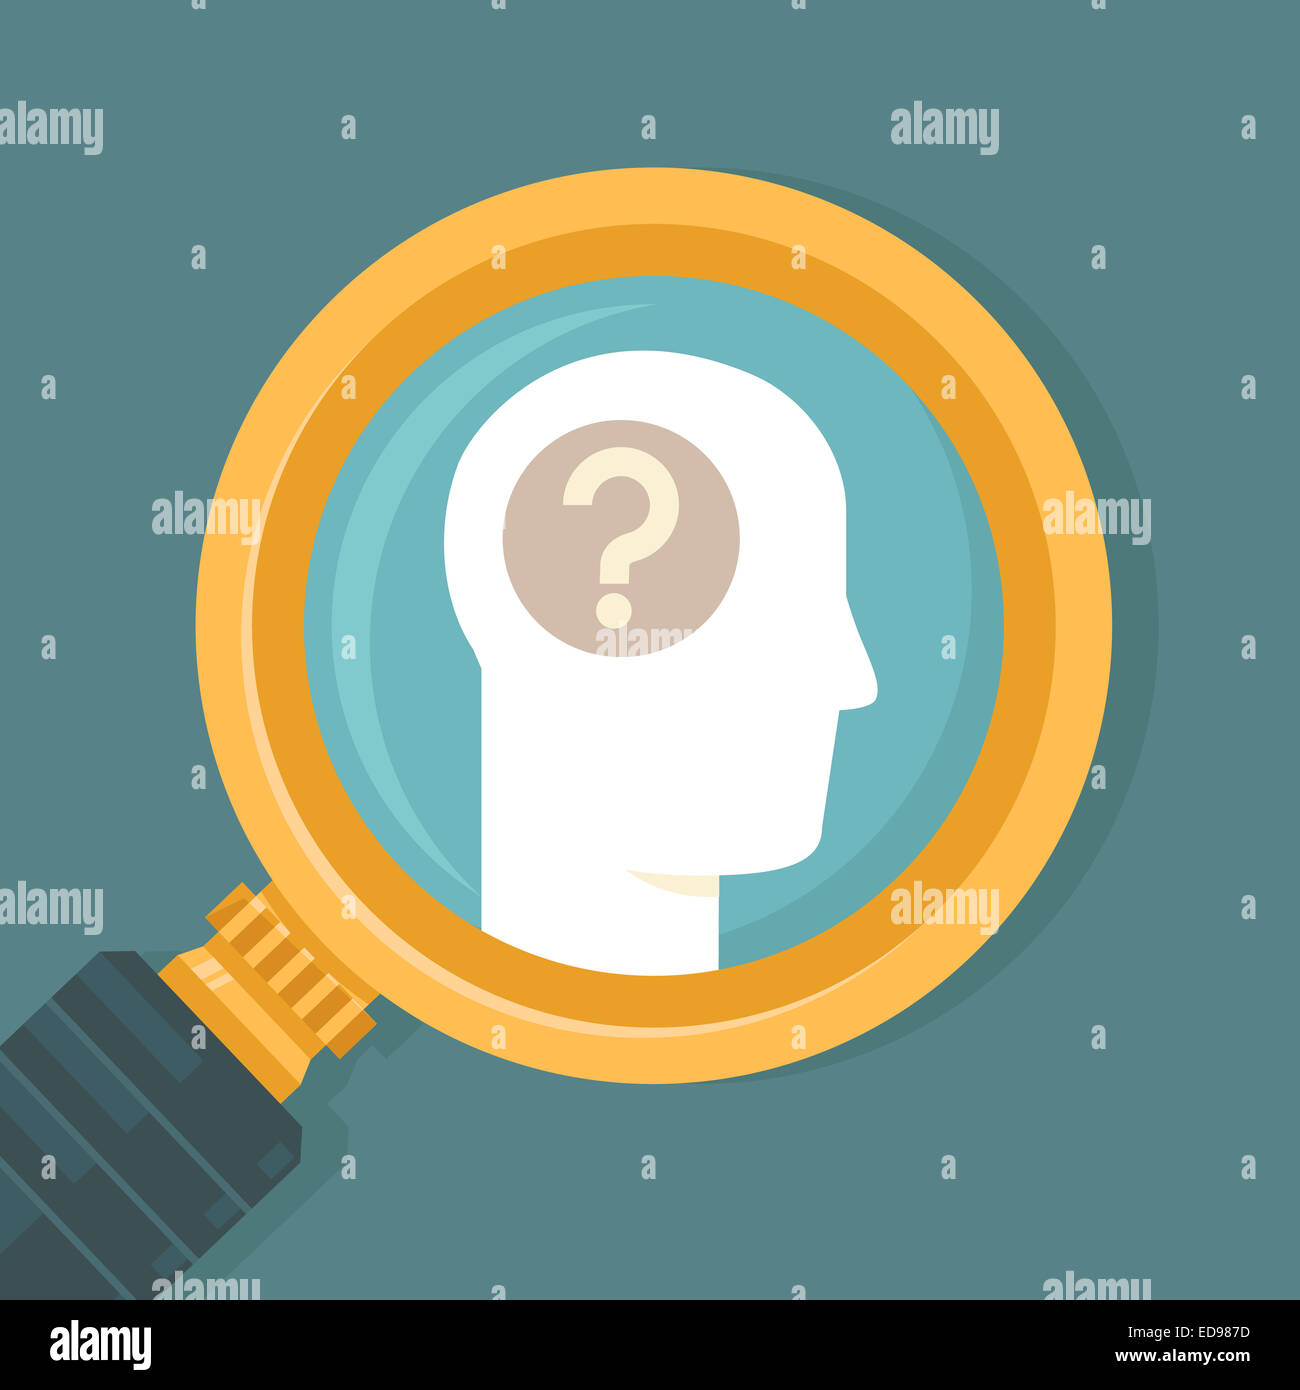 Psychology concept in flat style - human brain icon and magnifier - Stock Image